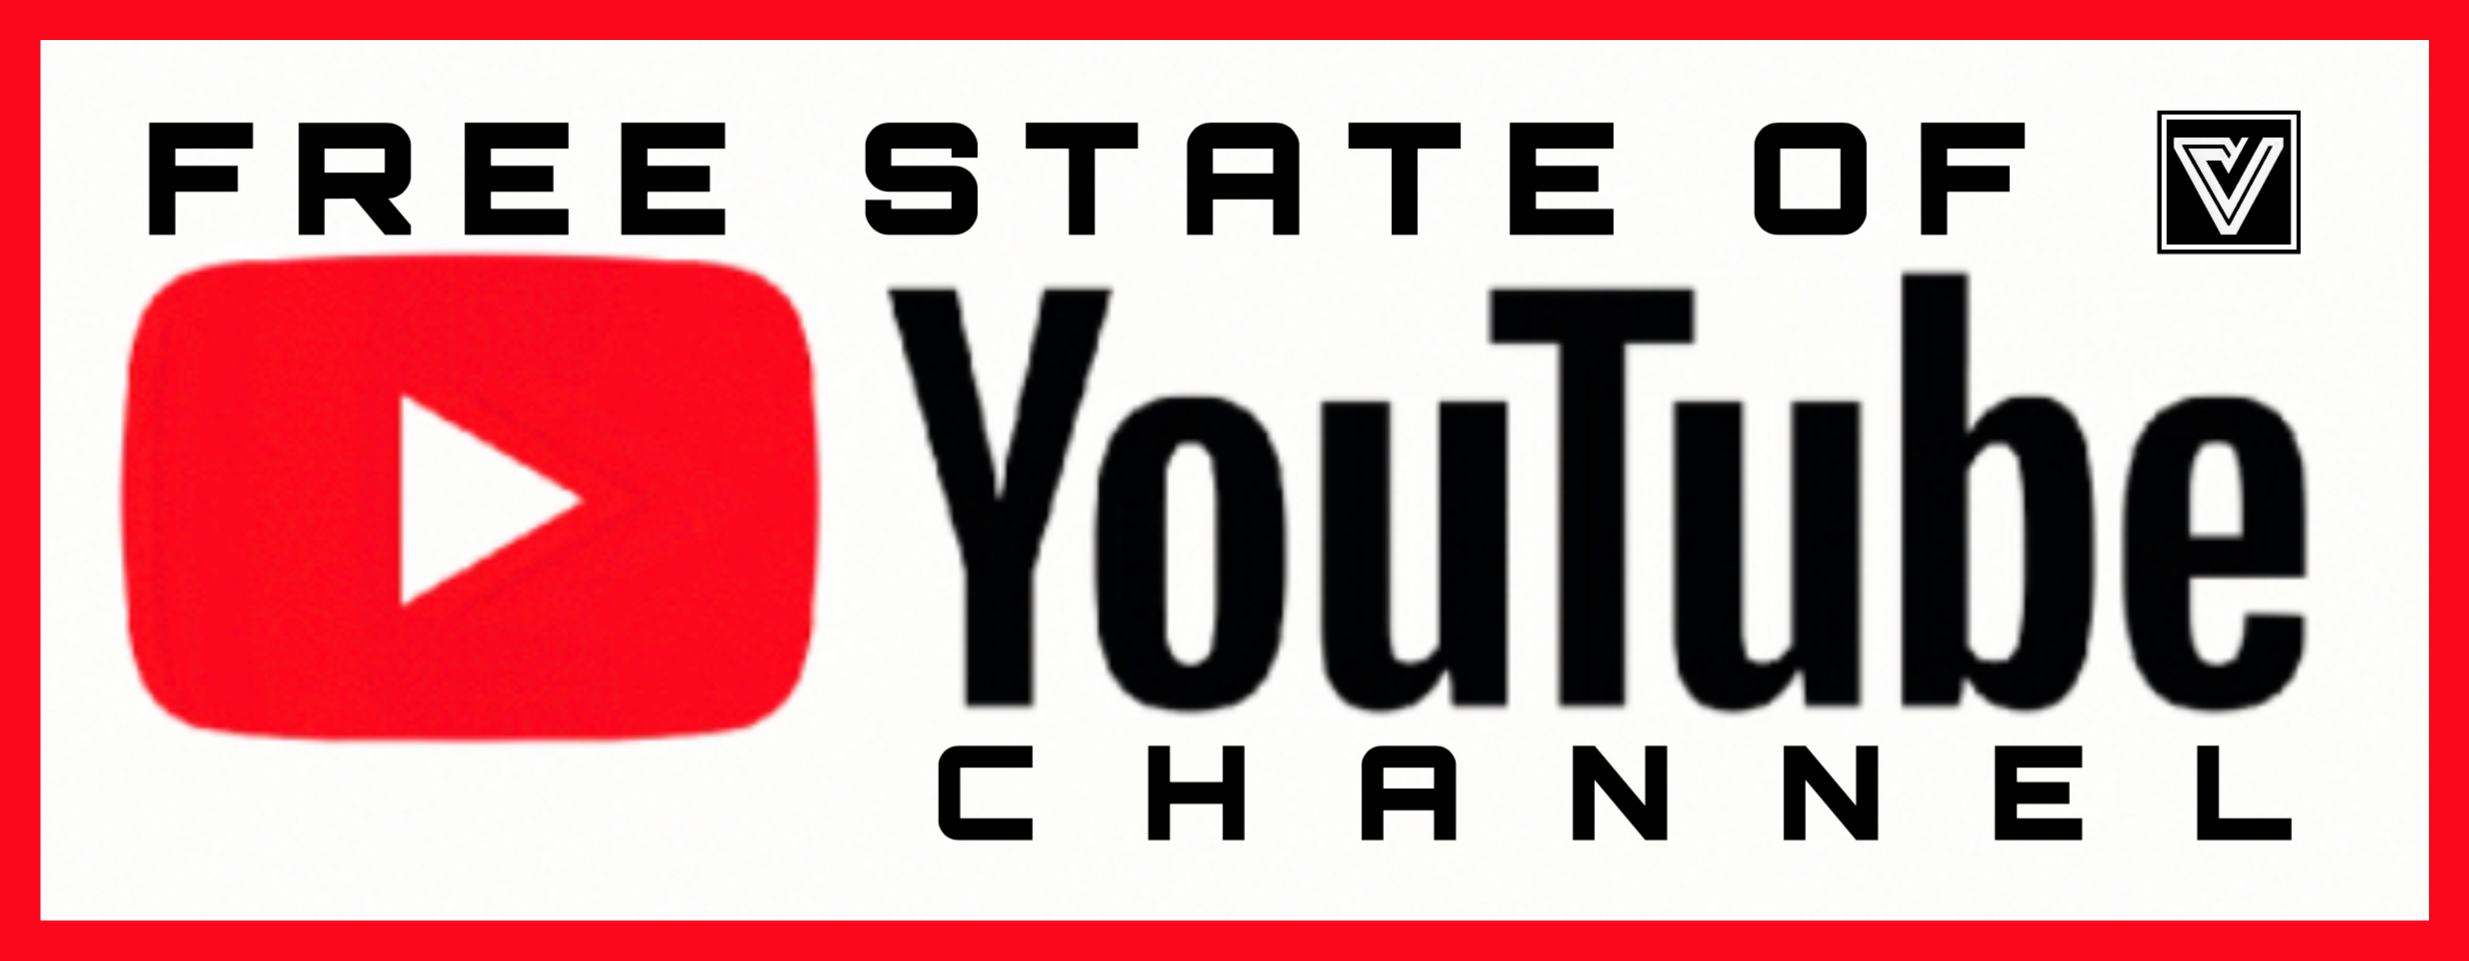 Free State of V YouTube Channel